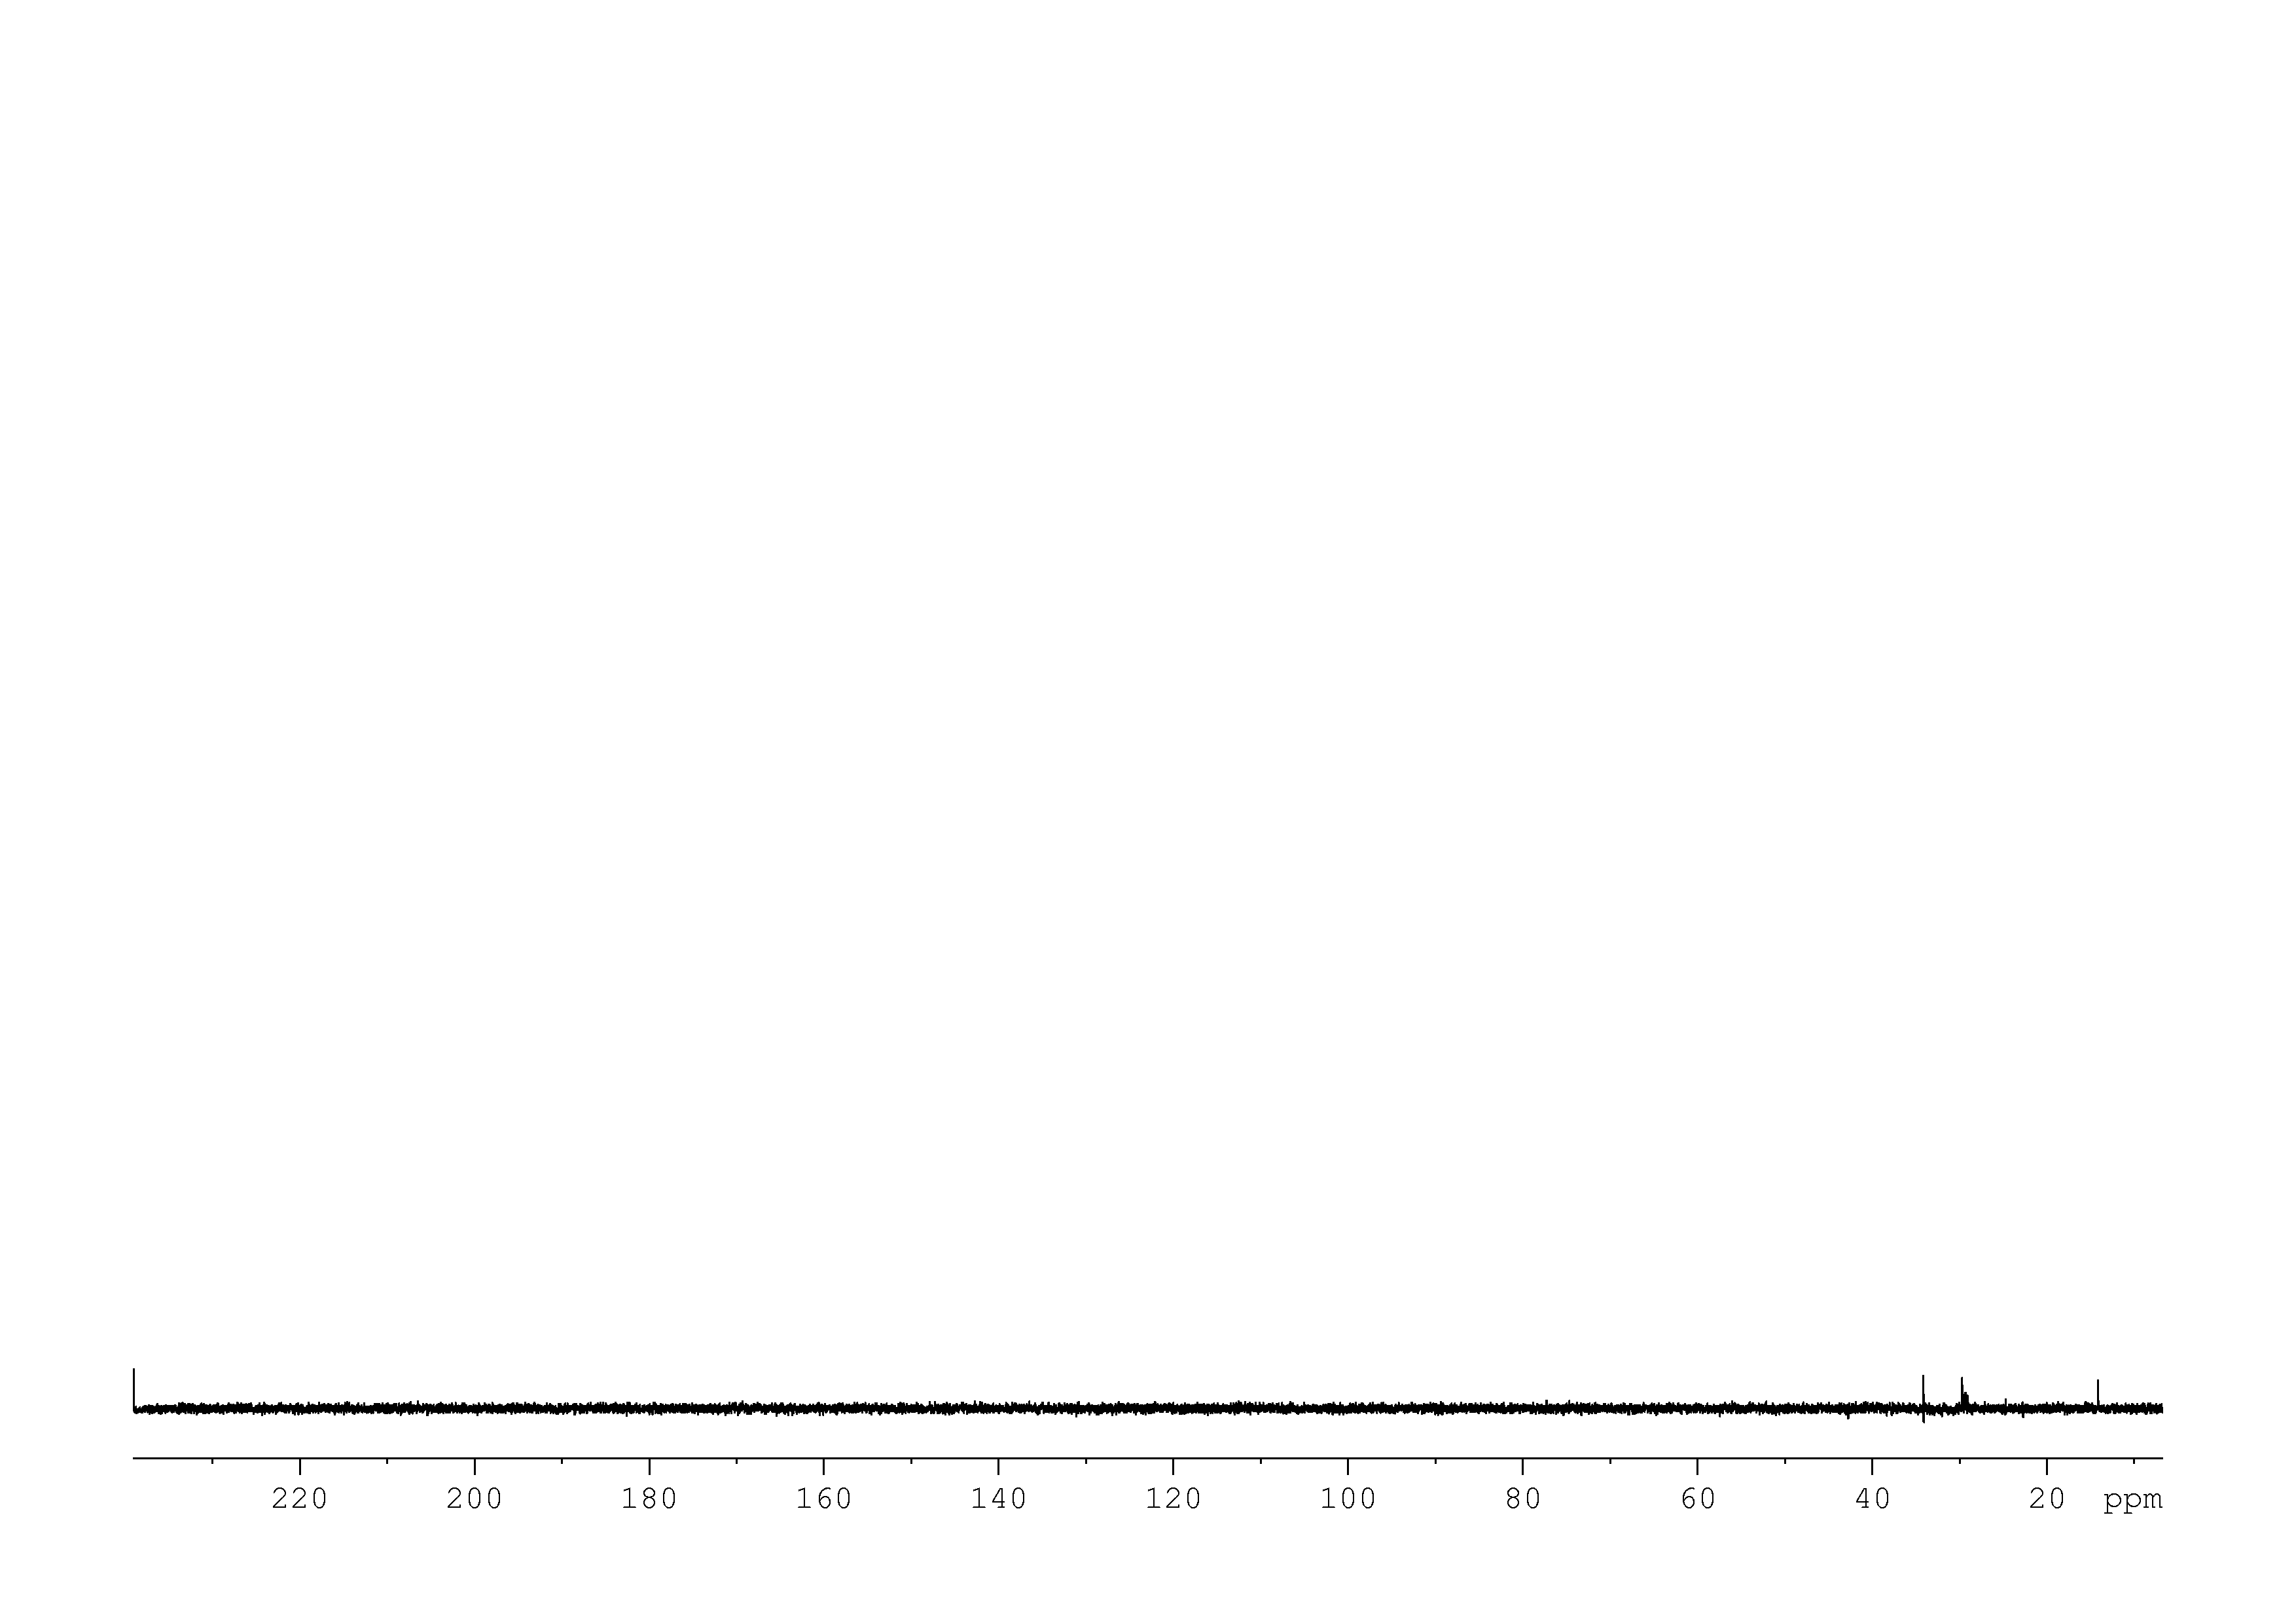 1D DEPT90, n/a spectrum for pentadecanoic acid